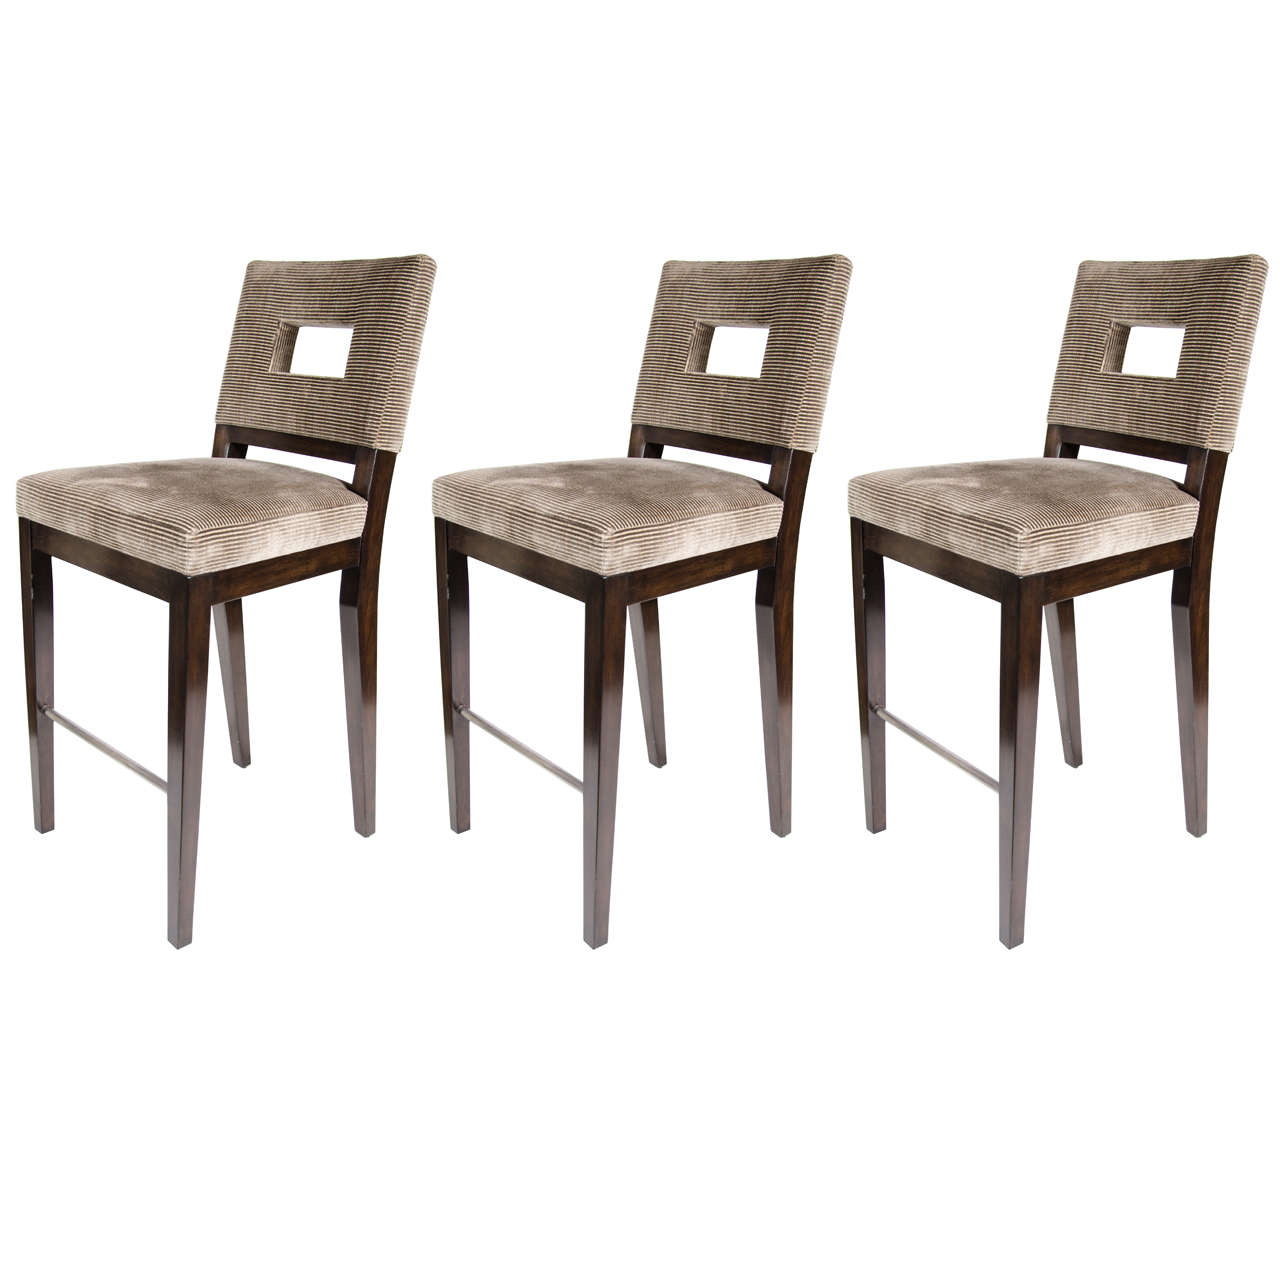 set of three mid century modern bar stools with cut out back design at 1stdibs. Black Bedroom Furniture Sets. Home Design Ideas